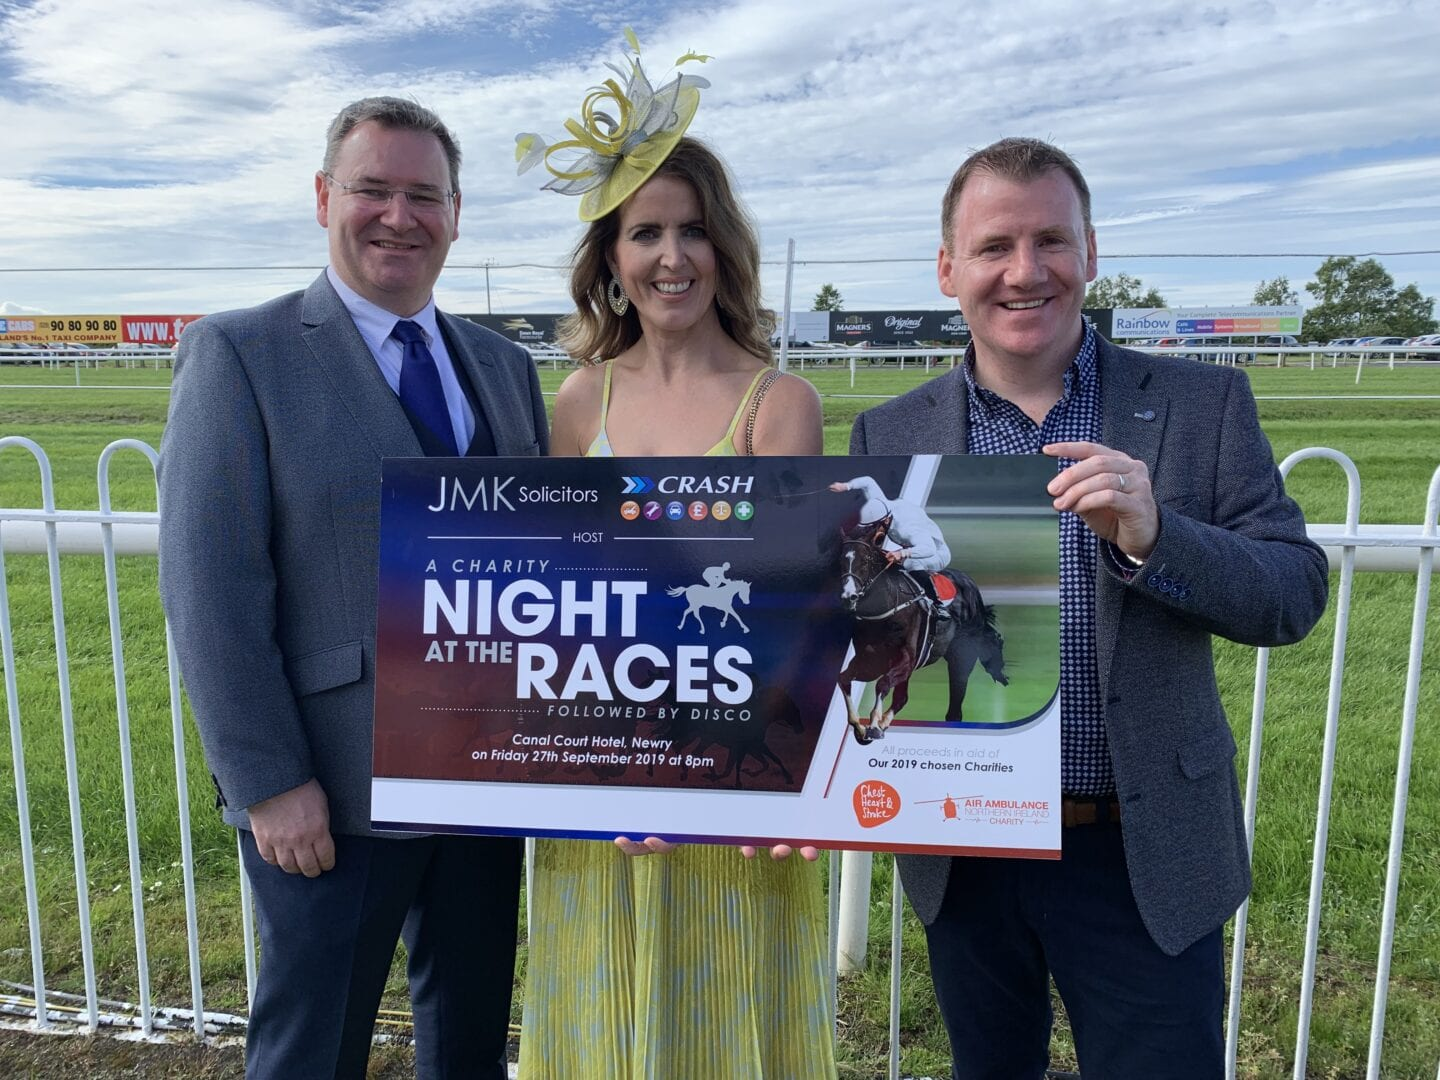 CRASH Services/JMK Solicitors Charity Night at the Races 2016